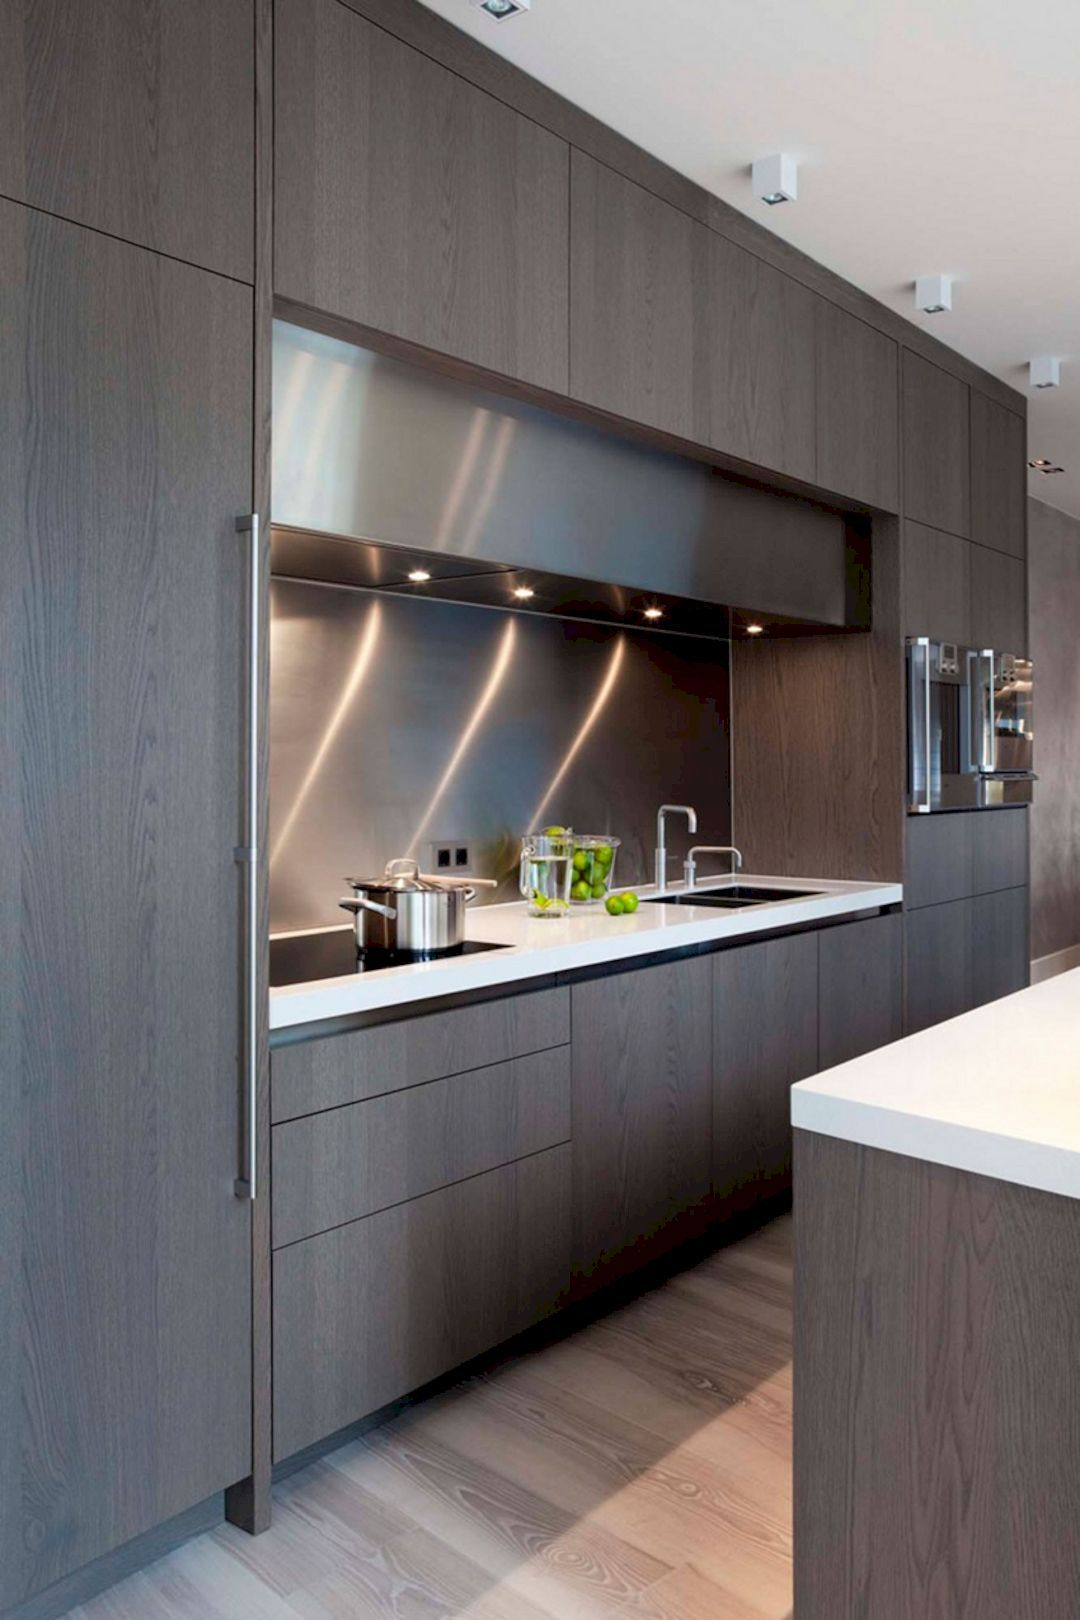 Stylish Modern Kitchen Cabinet 127 Design Ideas Https Www Futuristarchitecture 20591 Html